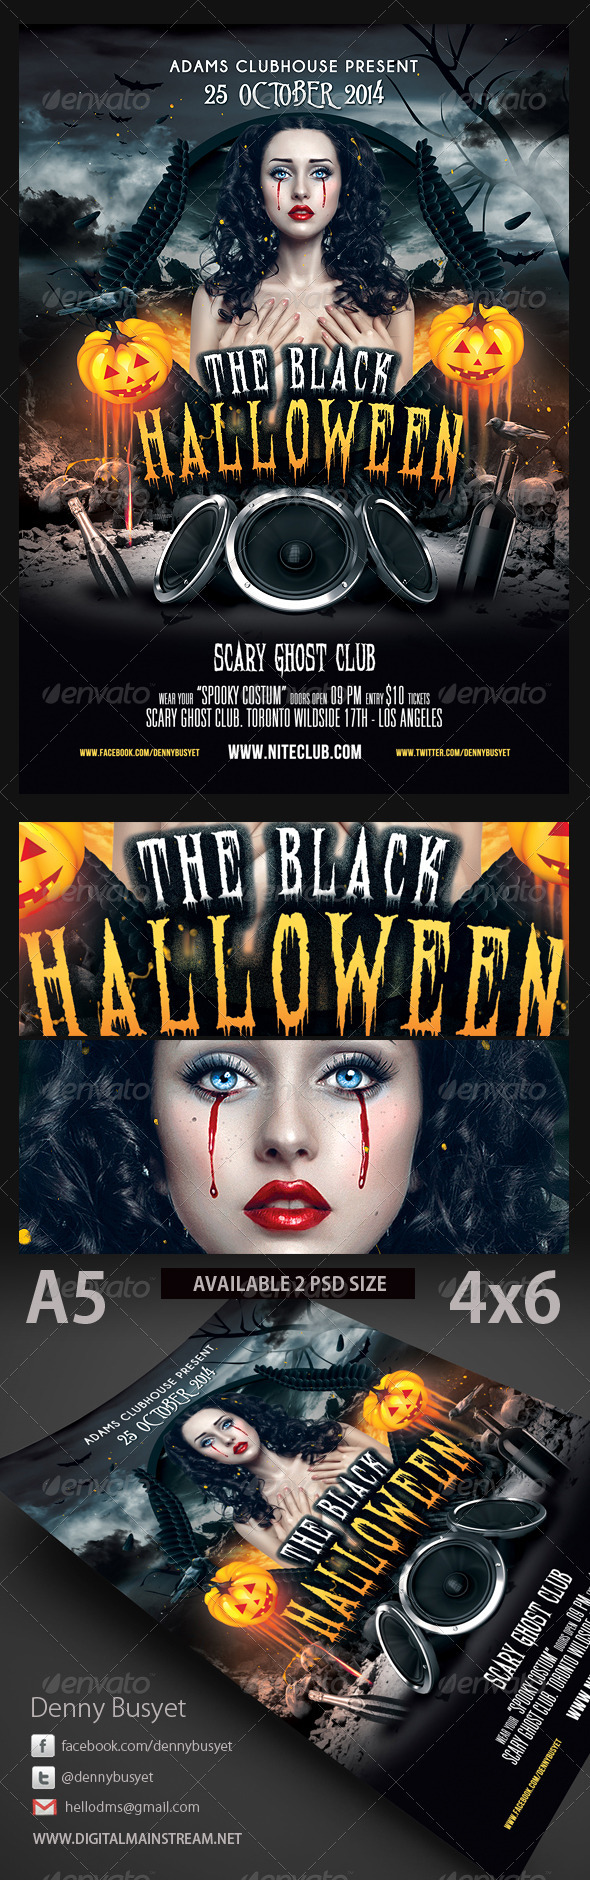 The Black Halloween Psd Flyer Template - Holidays Events